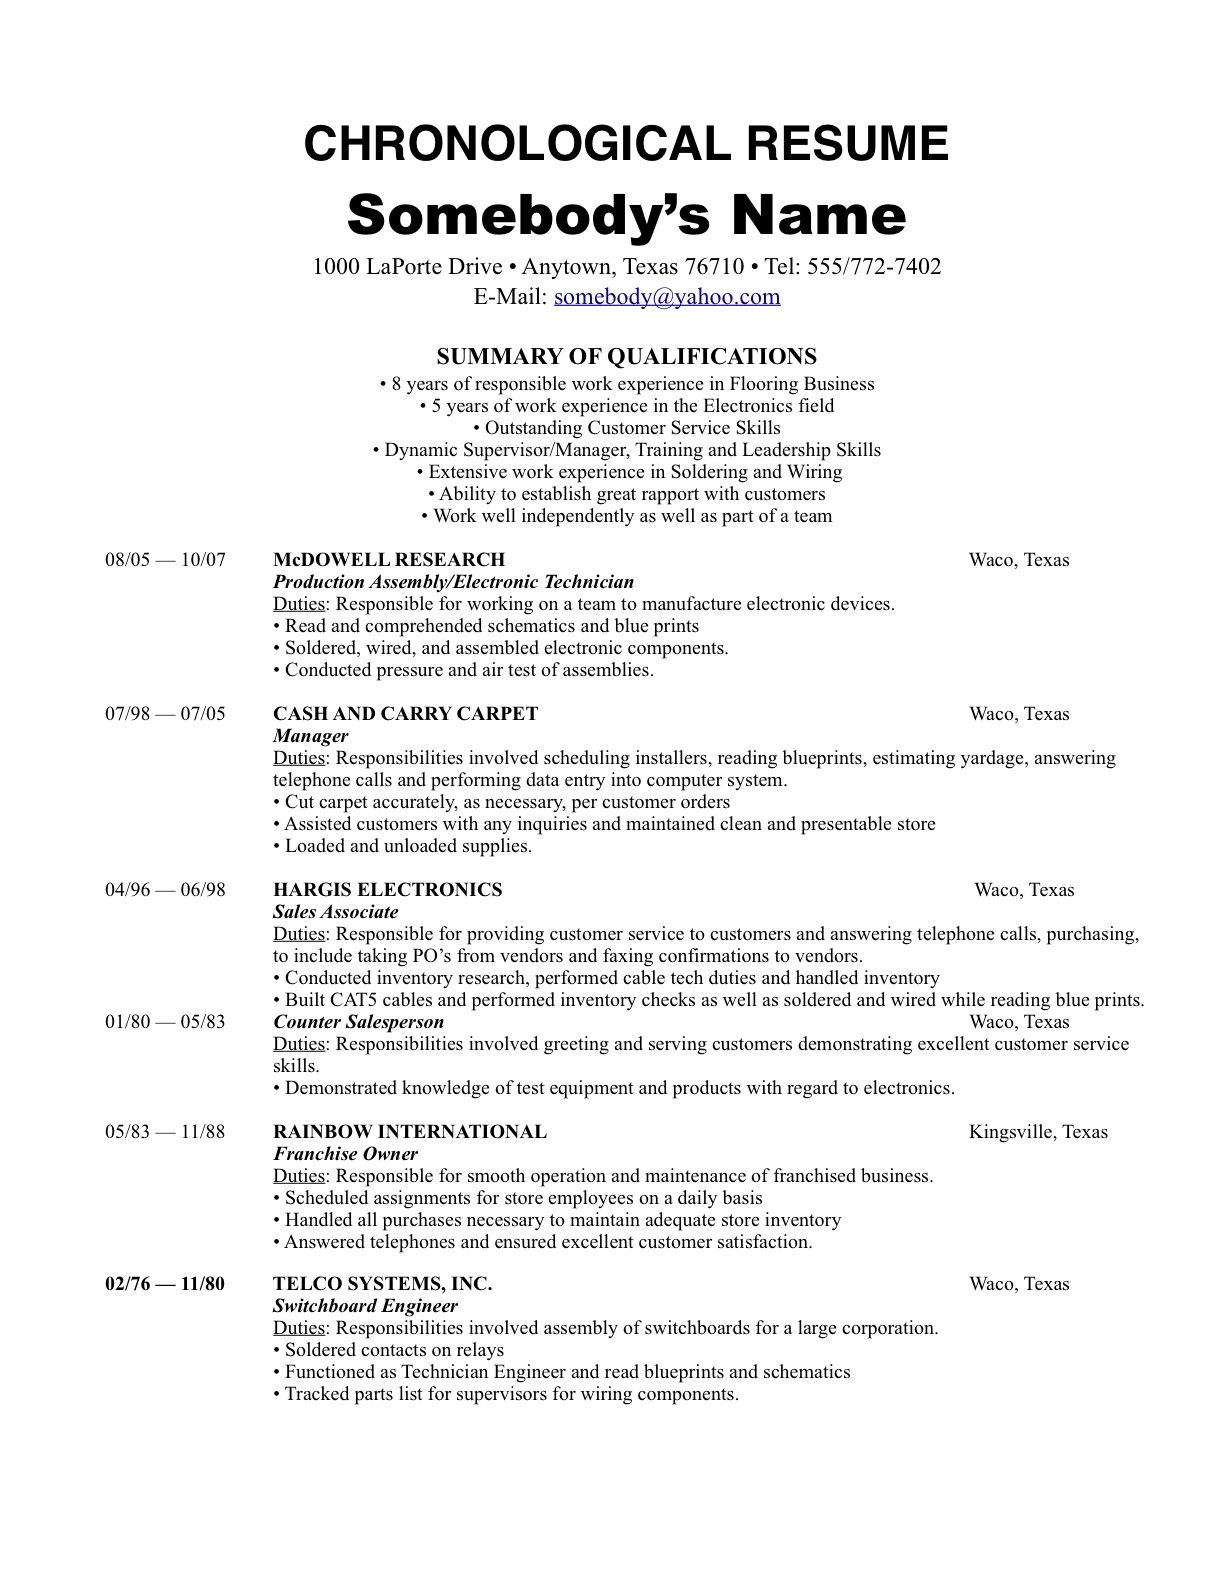 resume order zombierangerstk throughout resume order in order for